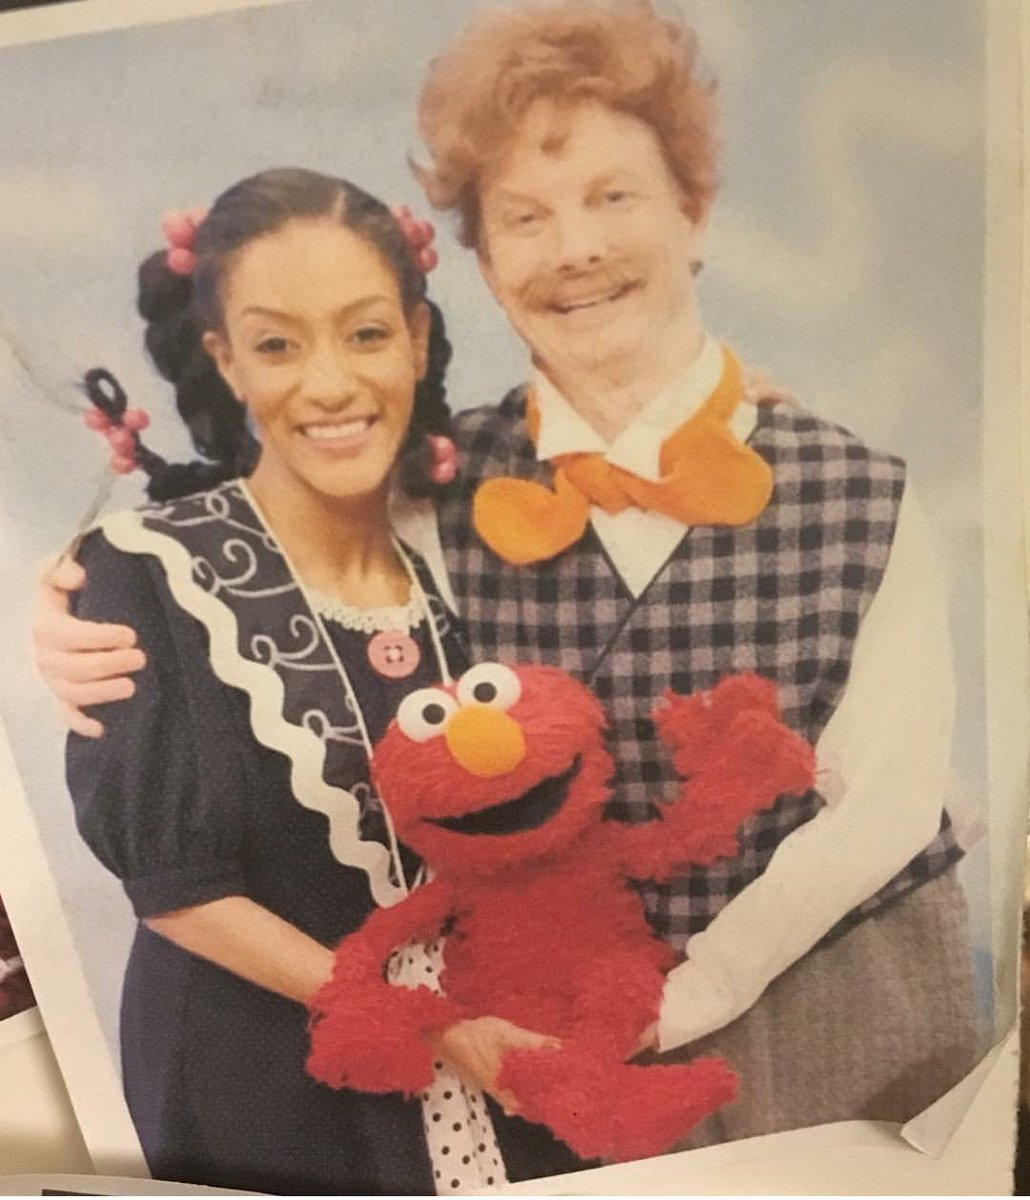 holly lisker on twitter sesamestreet welcome to the noodle family